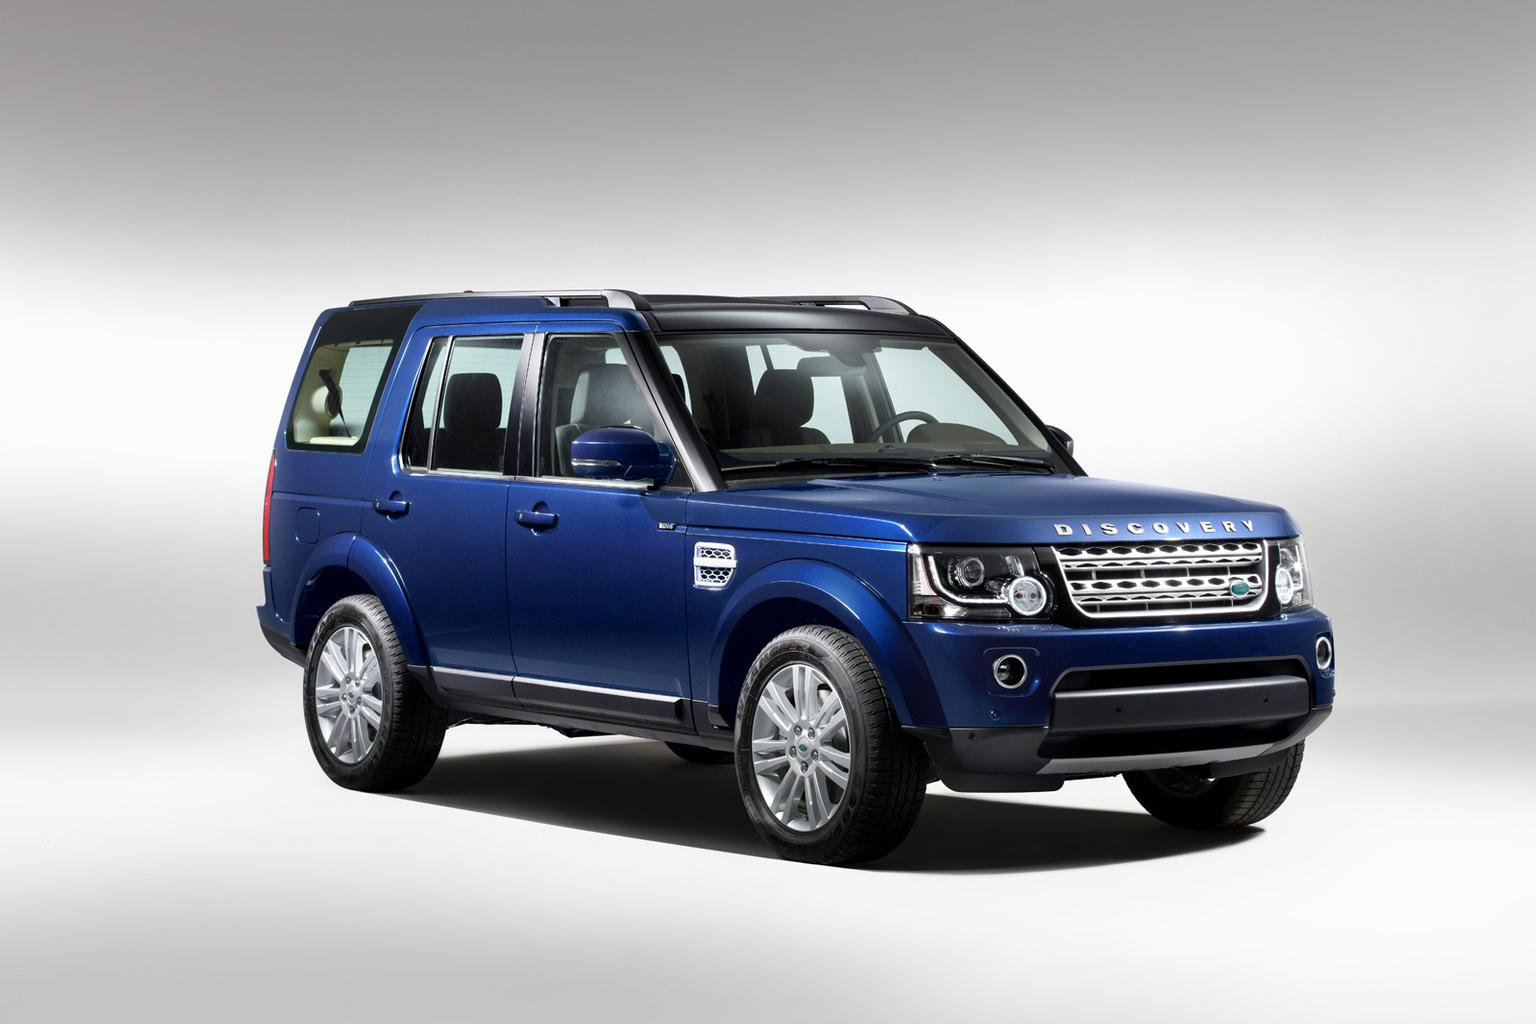 Facelifted Land Rover Discovery to be shown at Frankfurt